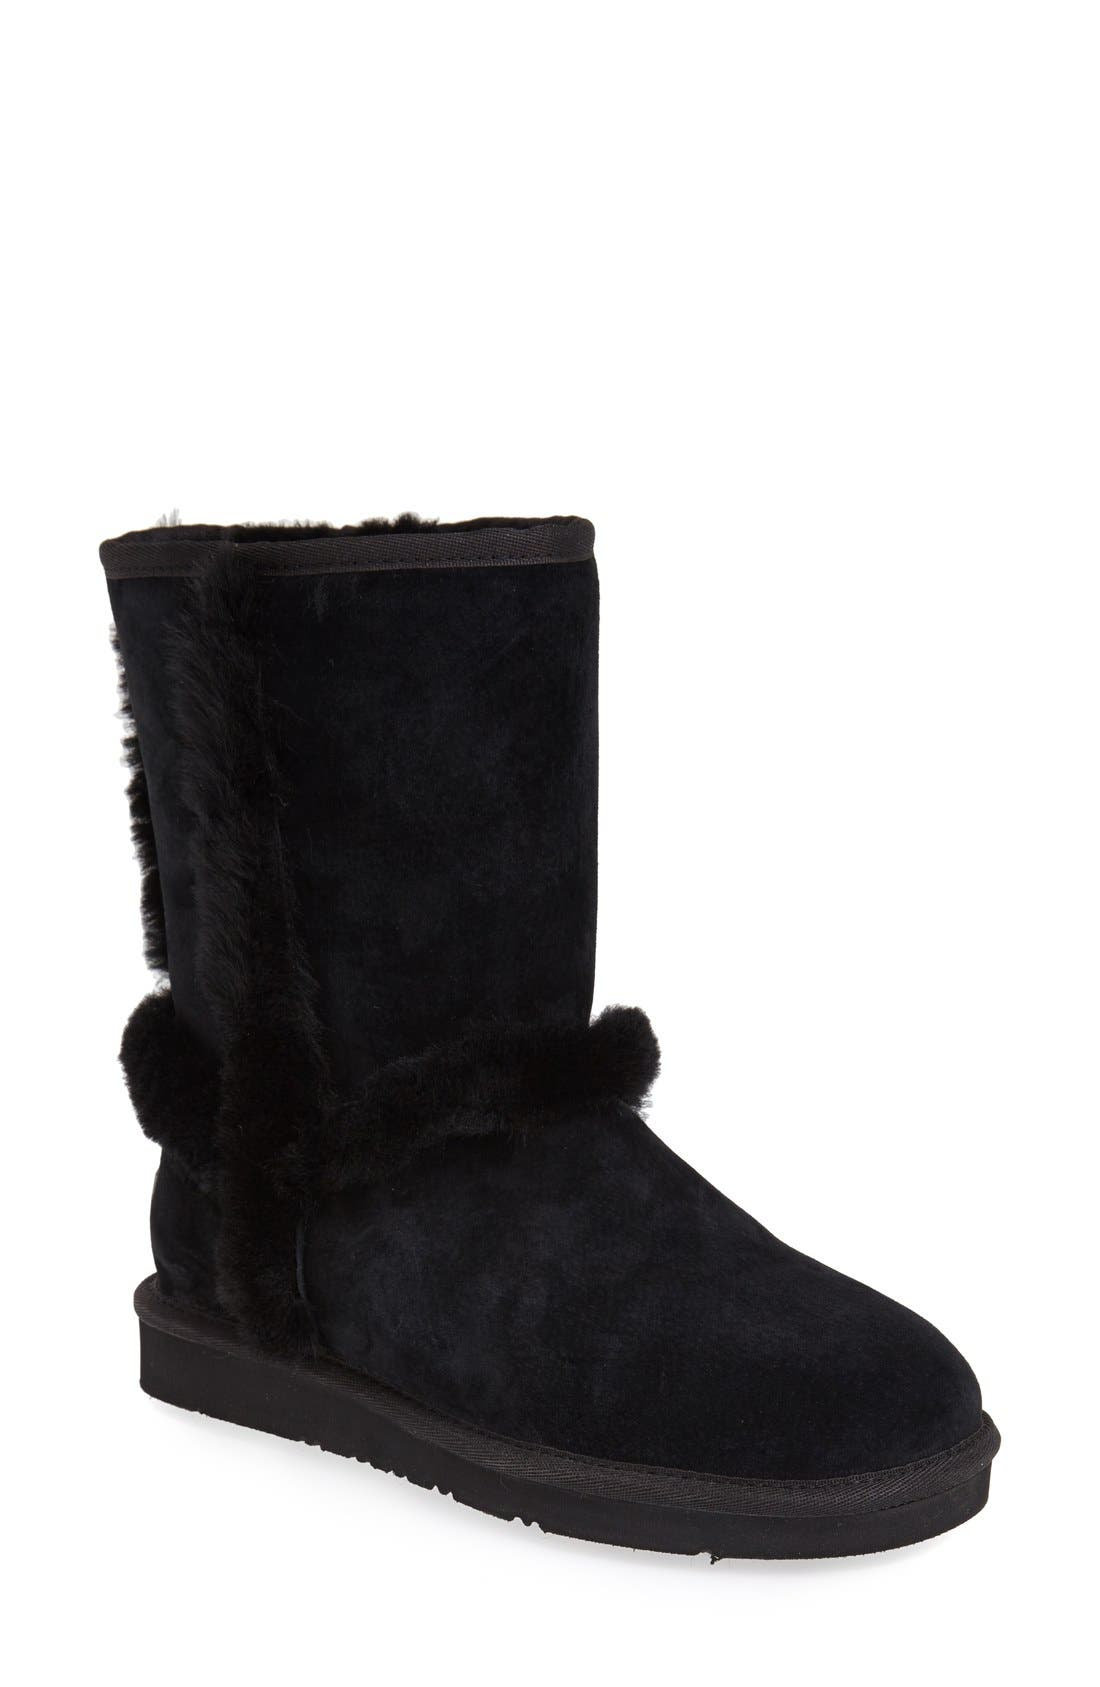 'Carter' Boot,                         Main,                         color, 001